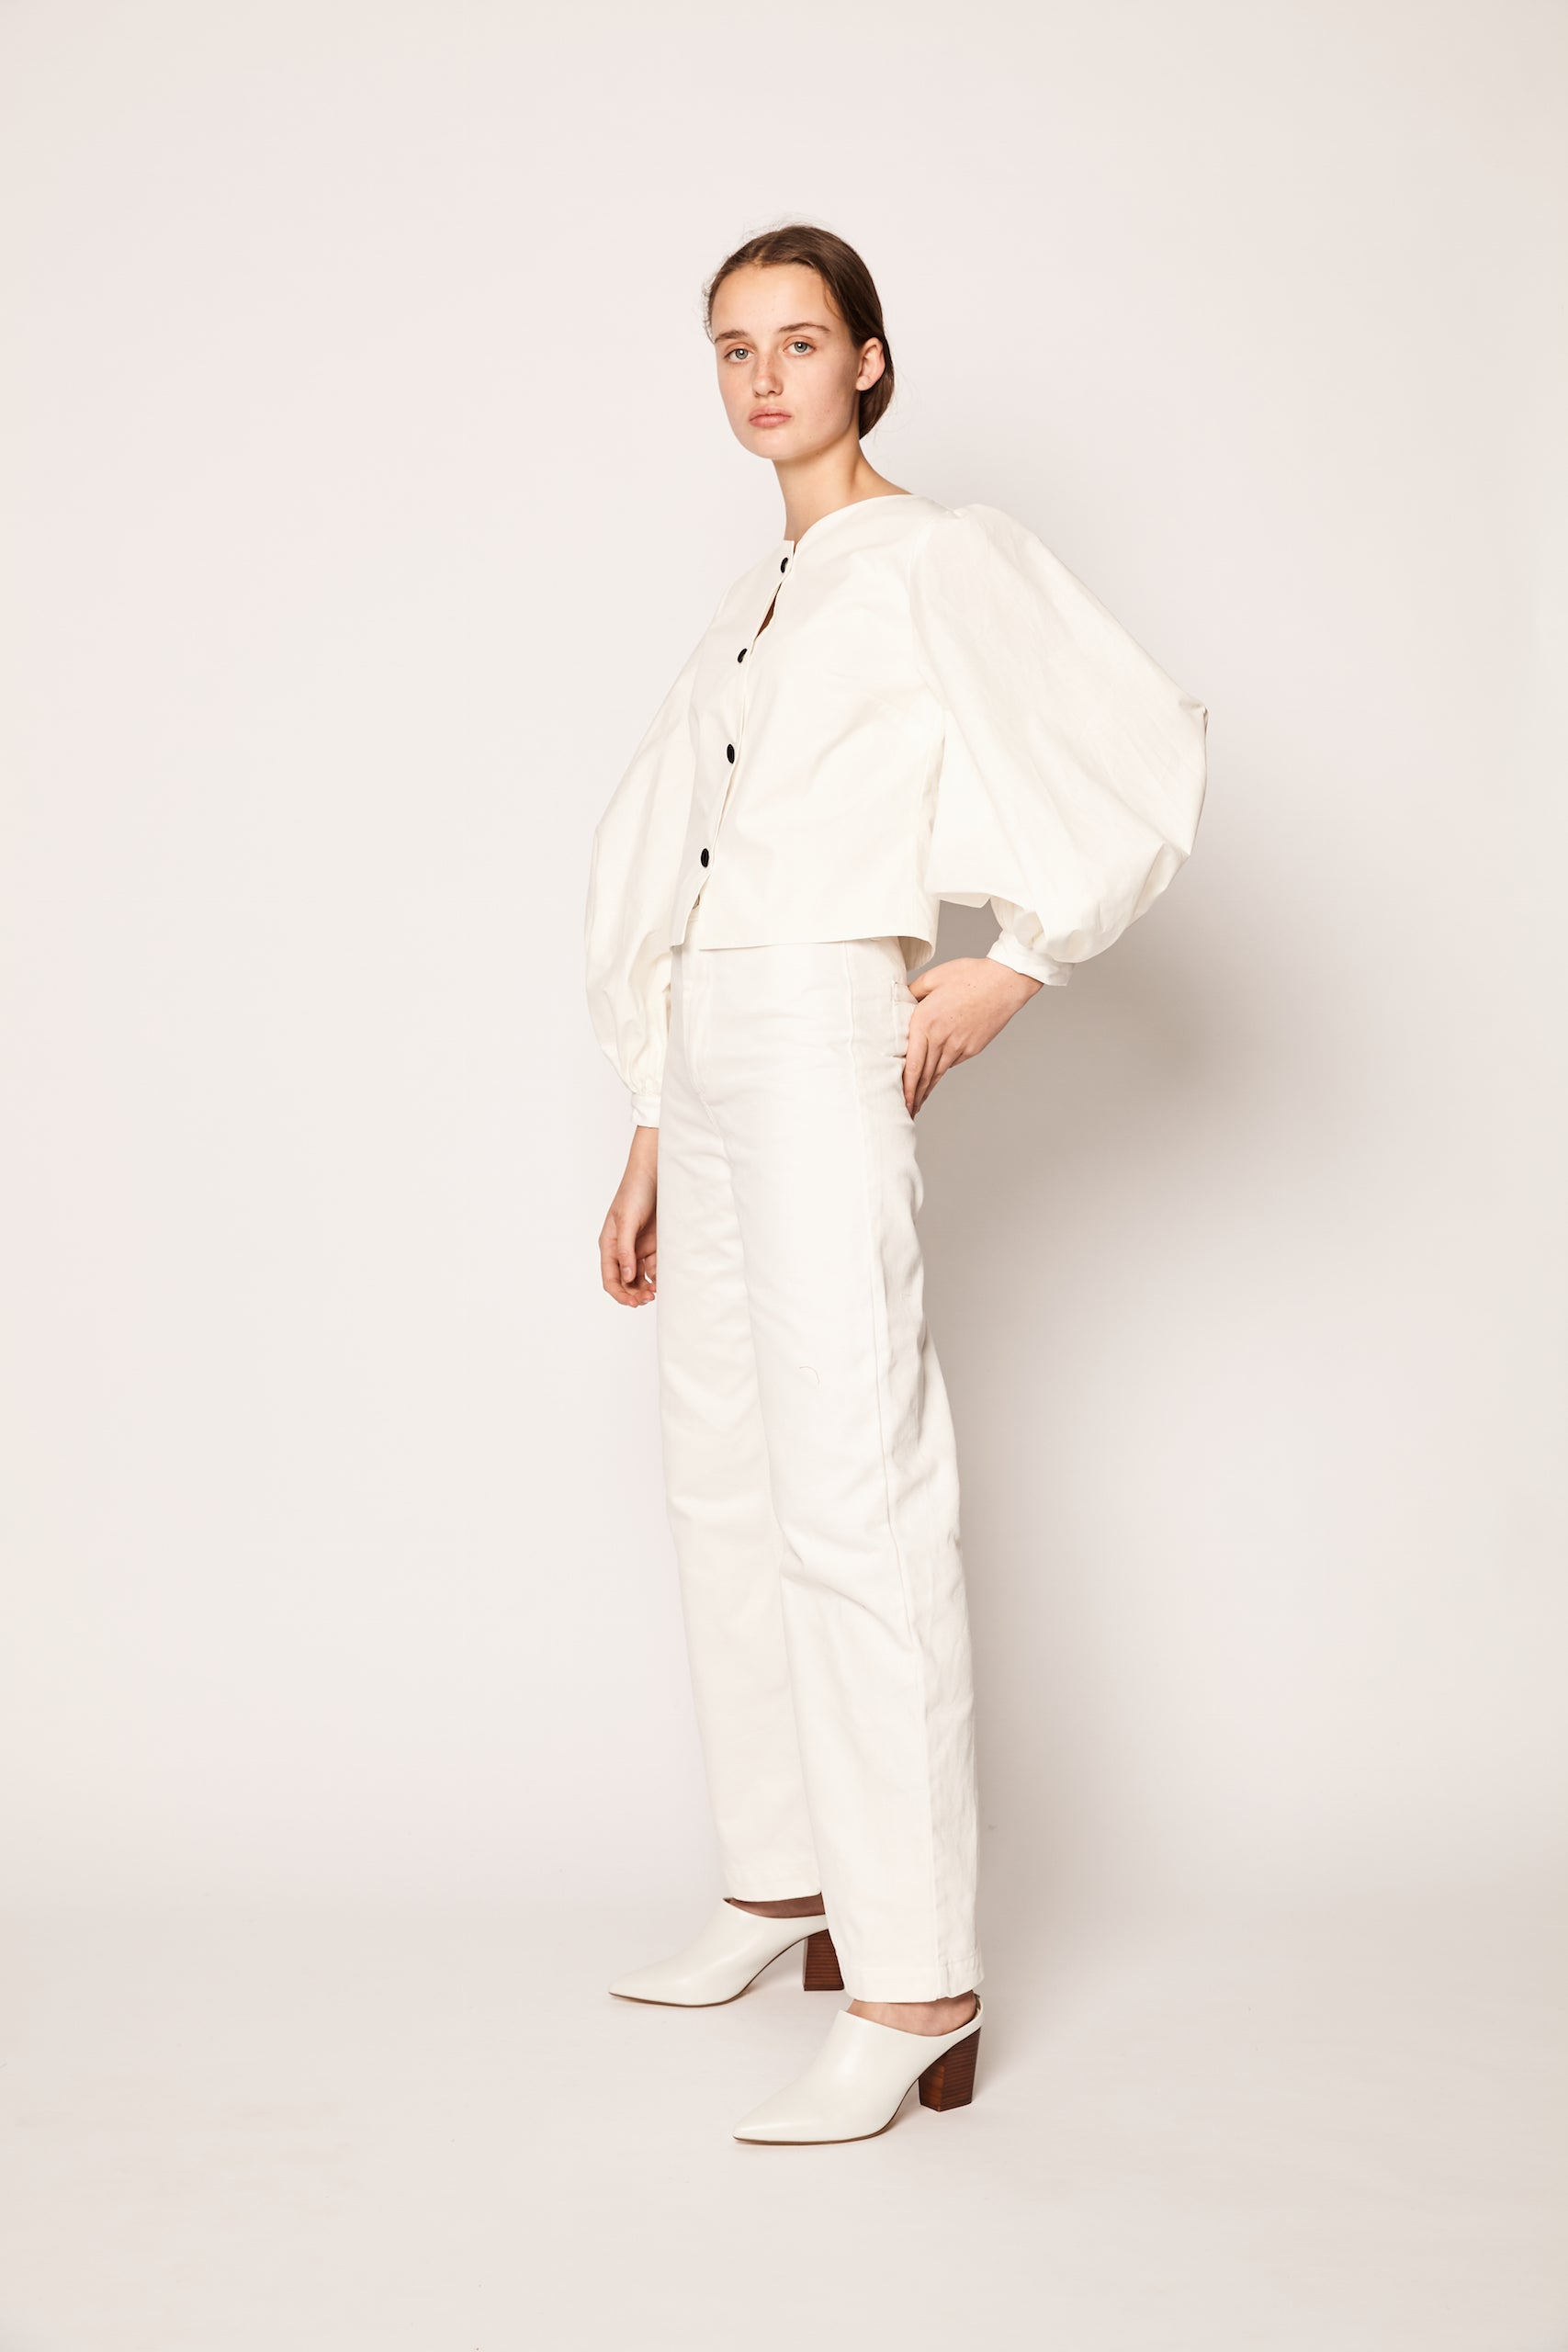 Blanca Blouse White